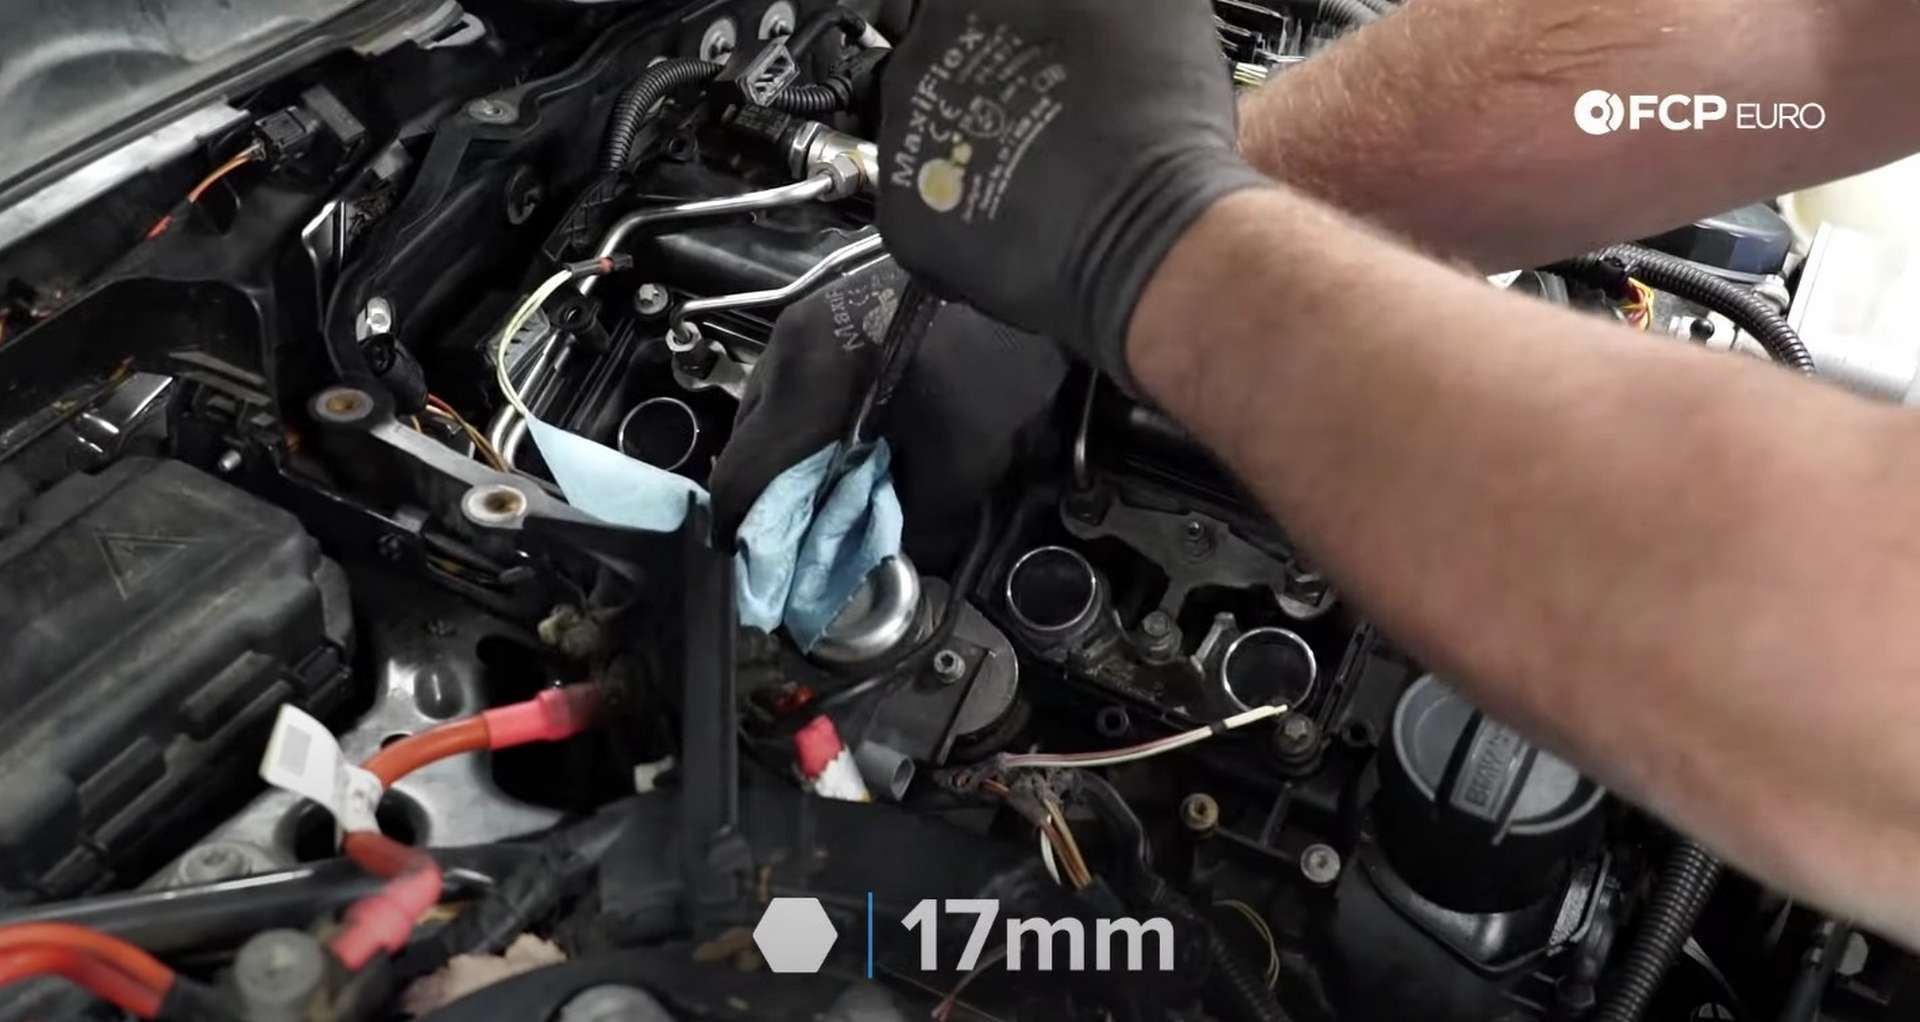 13-DIY-BMW-F30-Valve-Cover-Replacement_Removing-Fuel-System